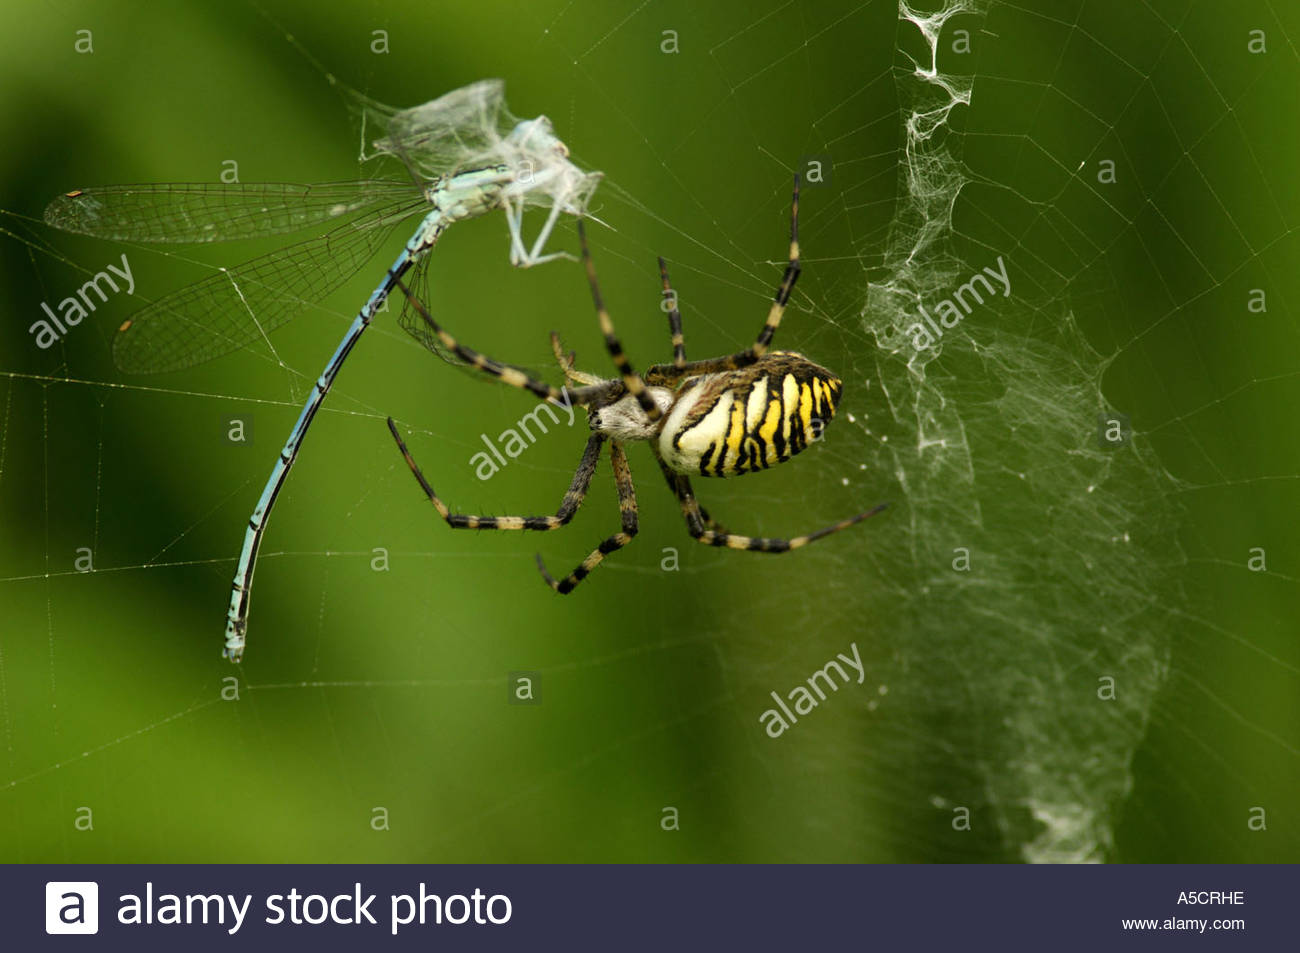 Wasp Spider clipart #2, Download drawings